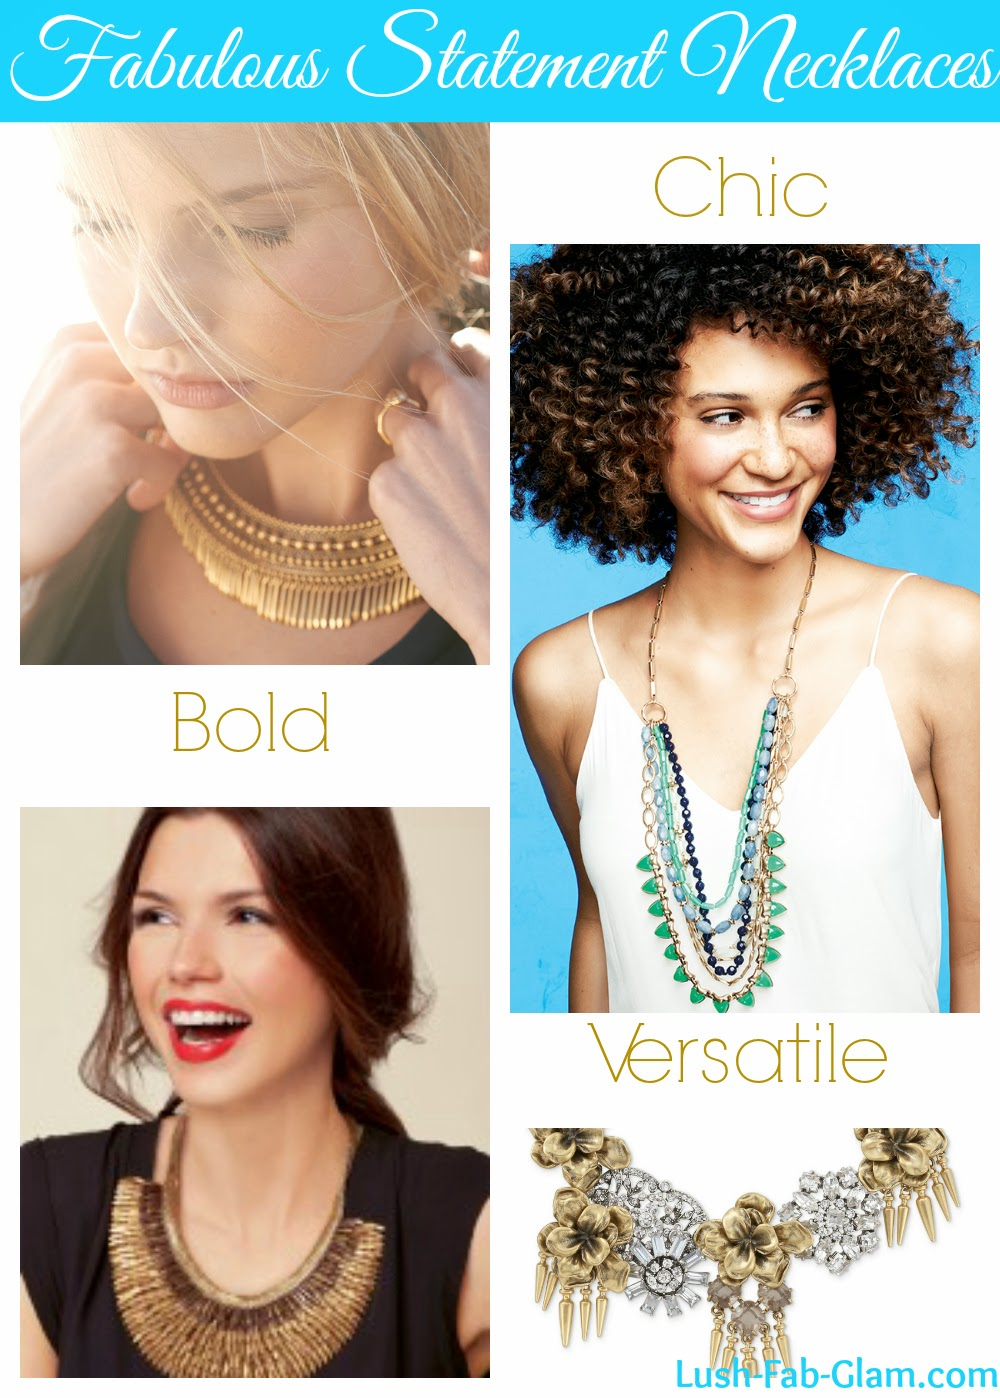 http://www.lush-fab-glam.com/2014/02/10-fabulous-statement-necklaces-to-jazz.html